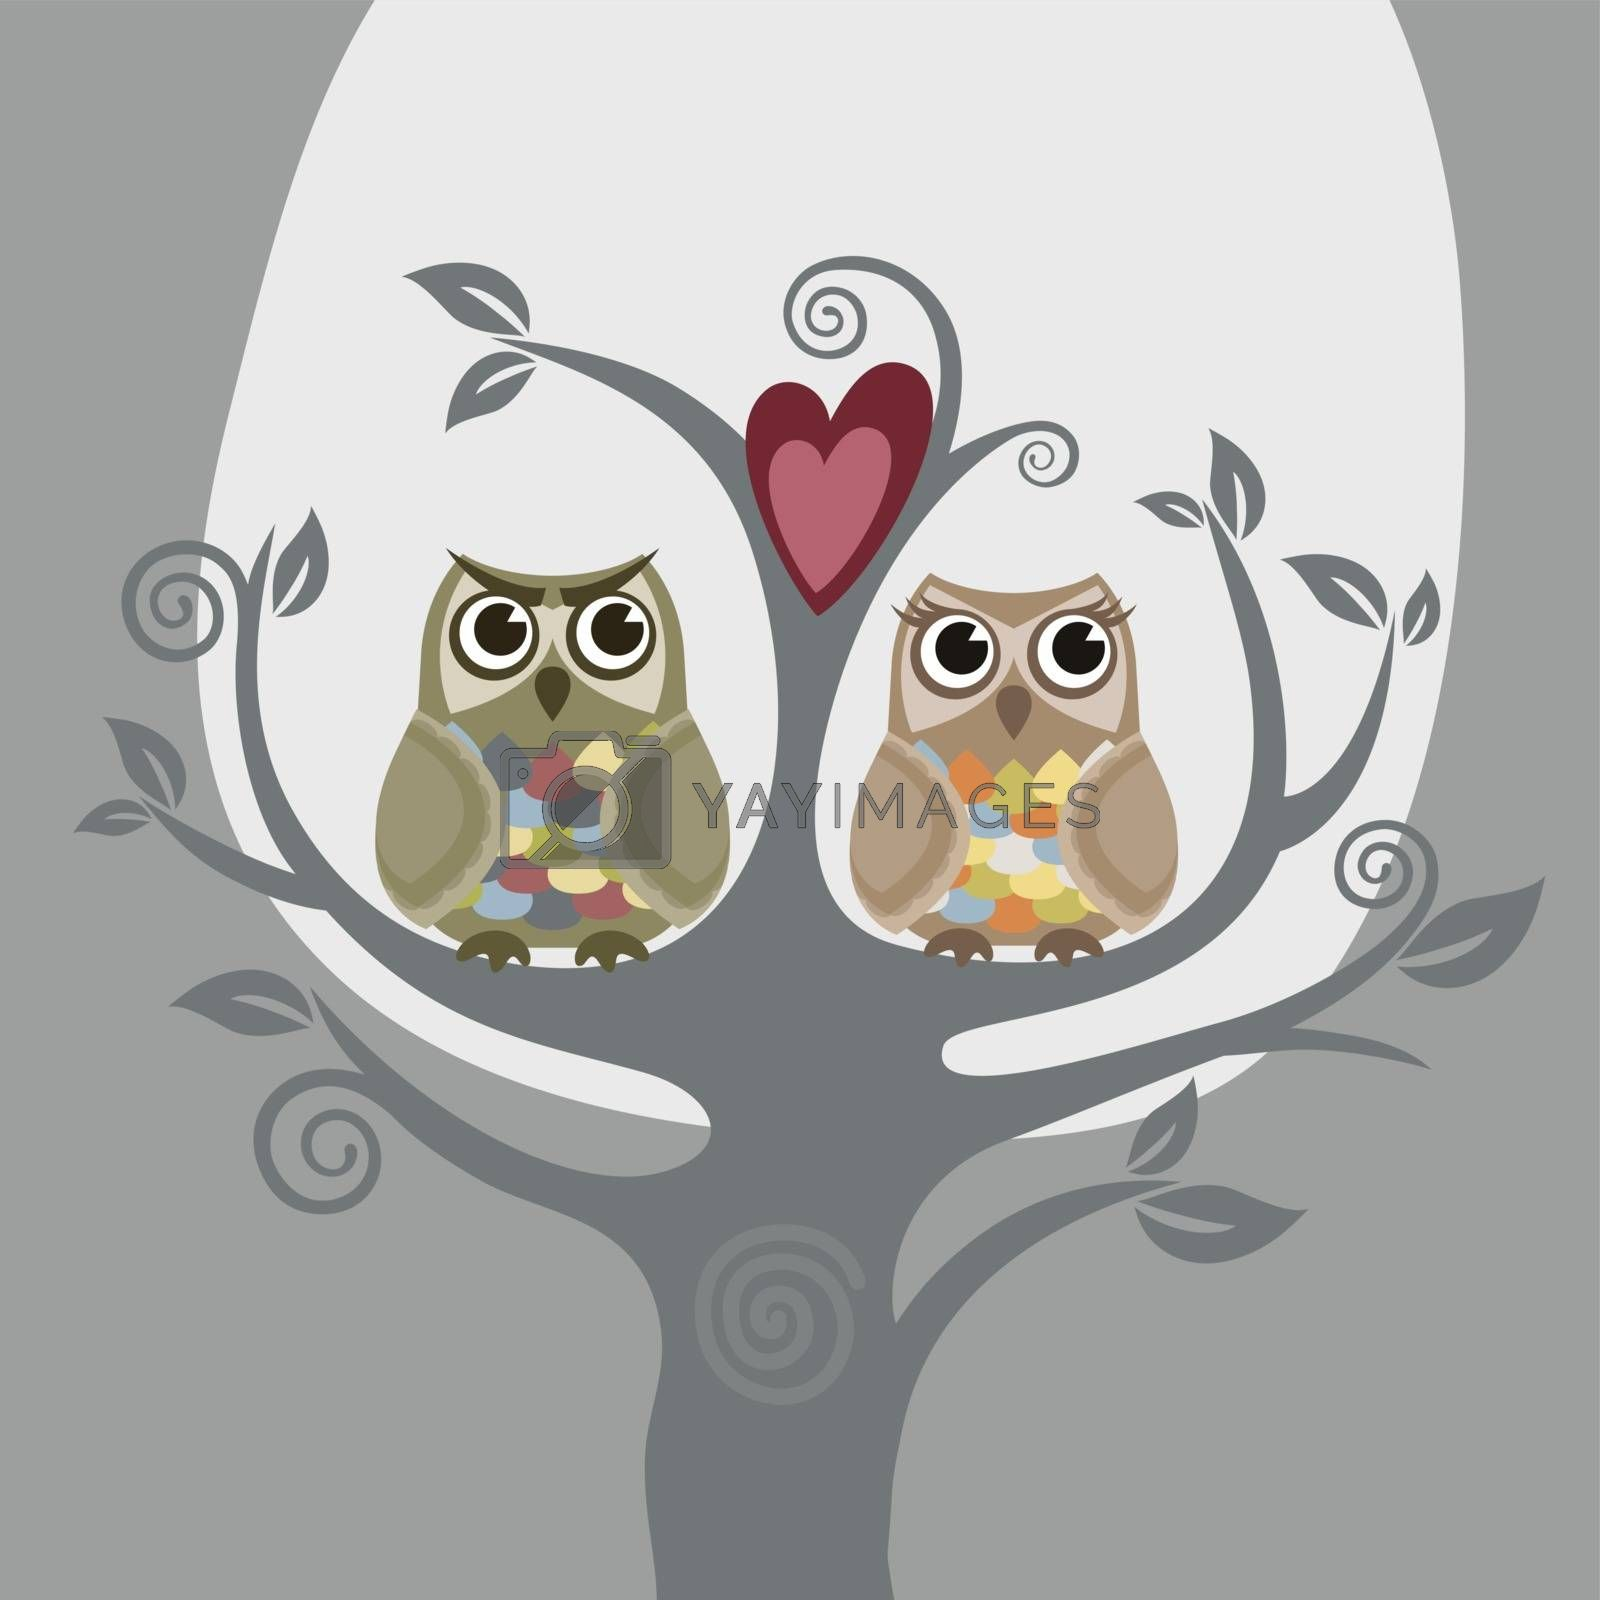 Two owls and love tree greeting card. This image is a vector illustration.